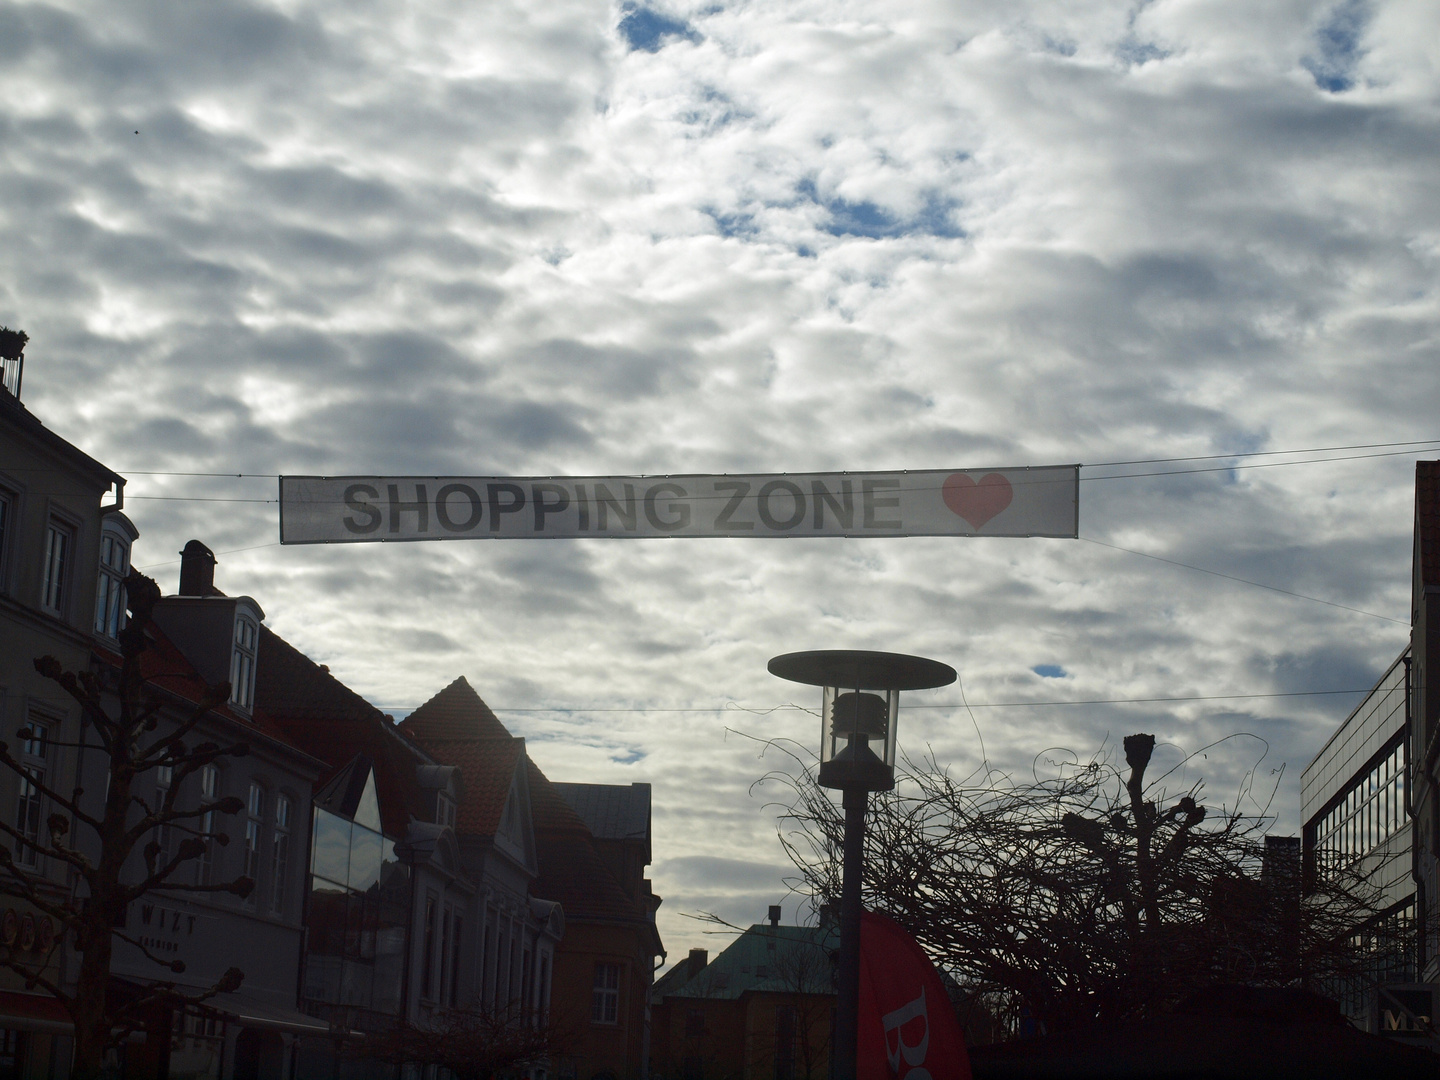 SHOPPING ZONE mit Herz